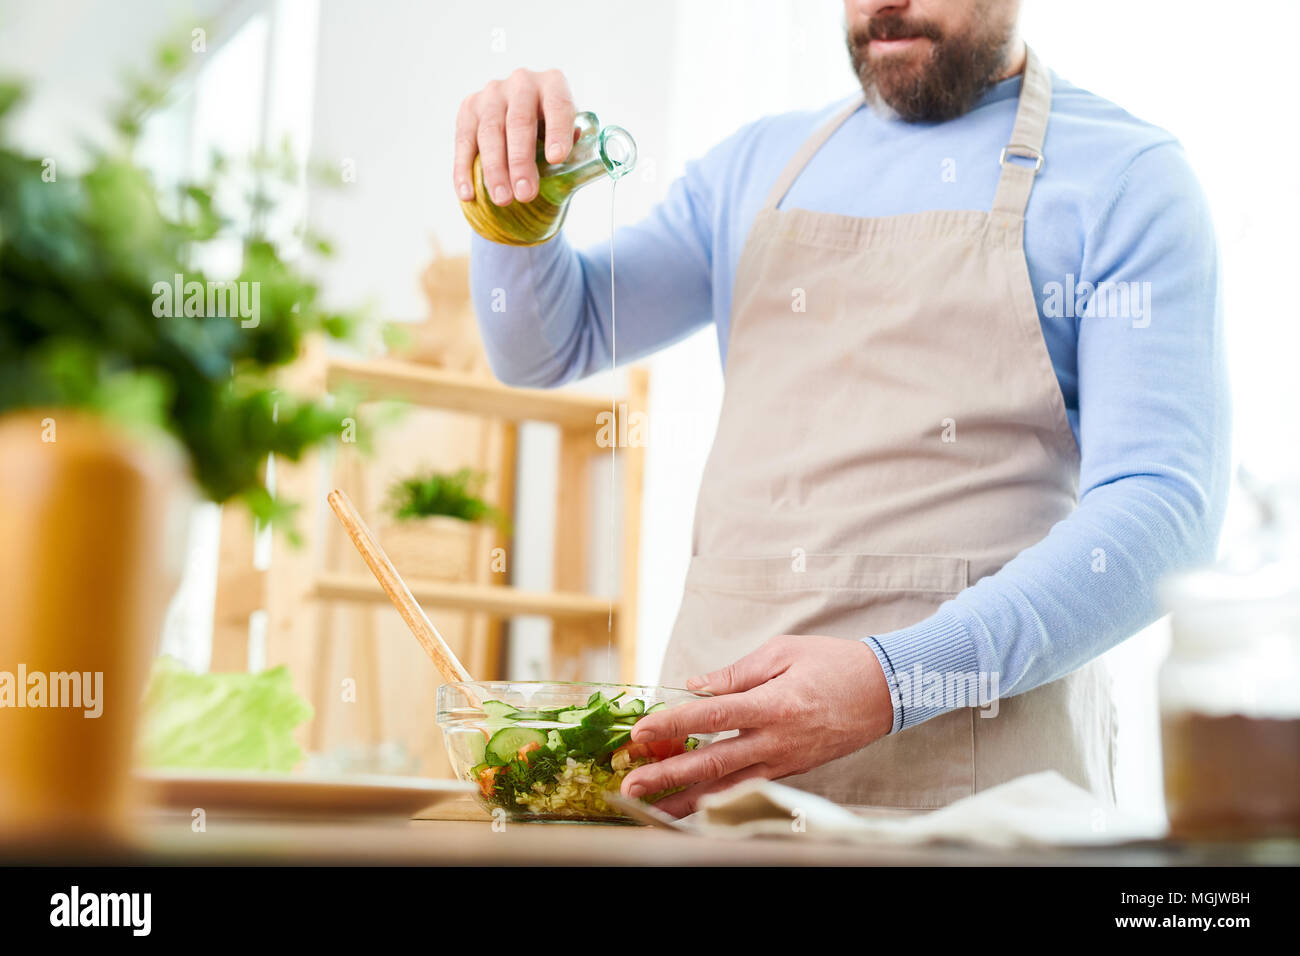 Bearded man wearing apron pouring olive oil into bowl with vegetable salad while preparing dinner for his family, interior of spacious kitchen on back - Stock Image